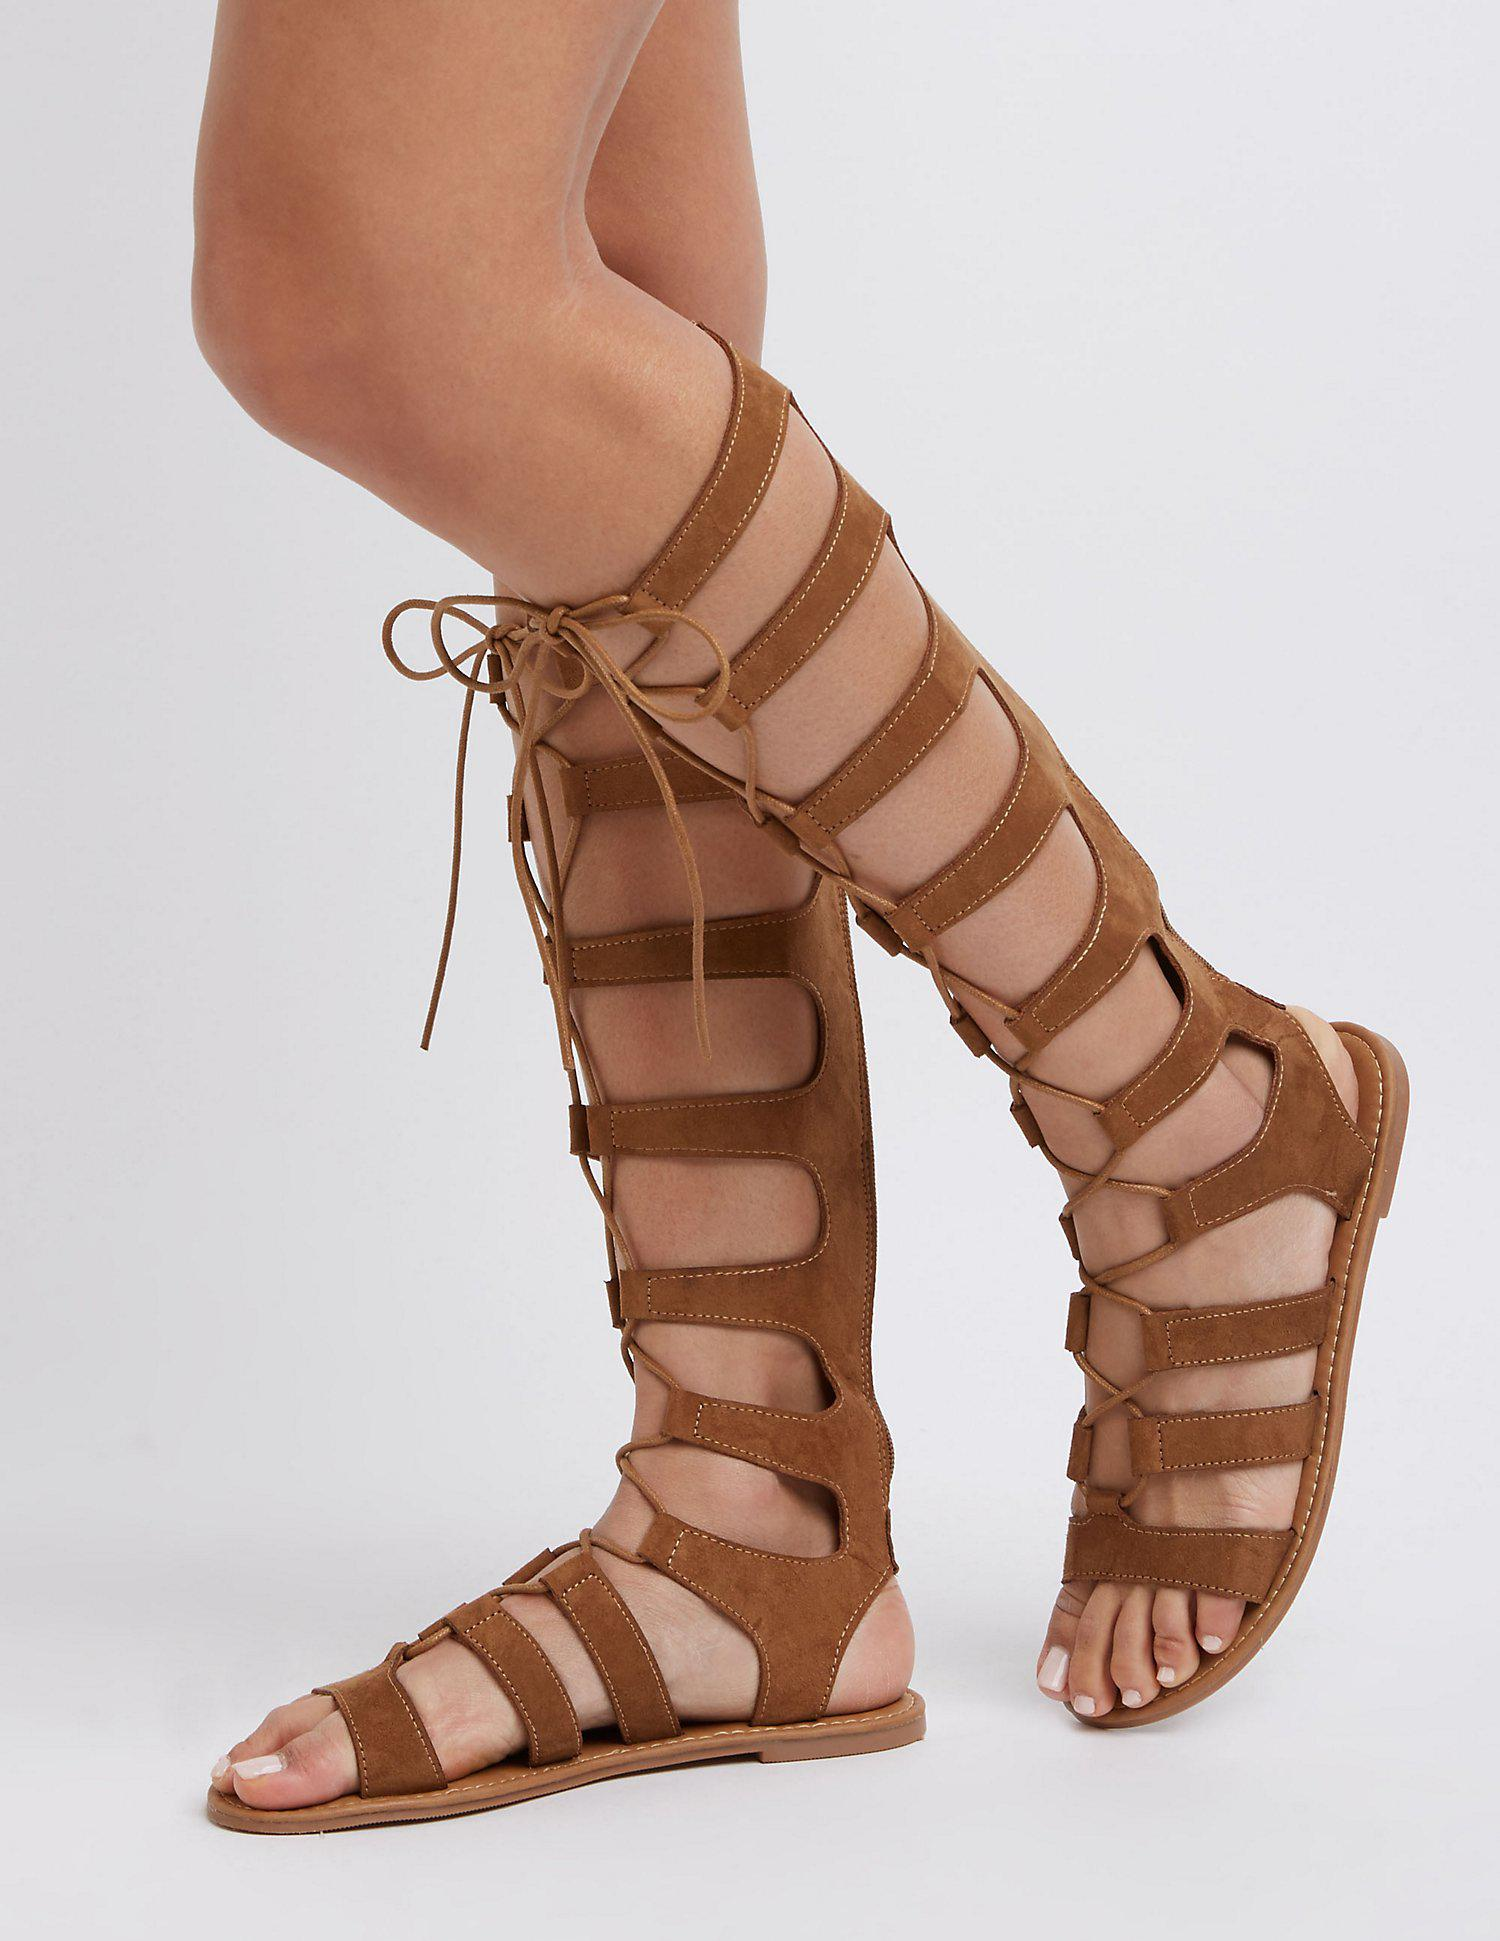 3863dd426d4e4 Gallery. Previously sold at: Charlotte Russe · Women's Gladiator Sandals  Women's Lace Up Flats